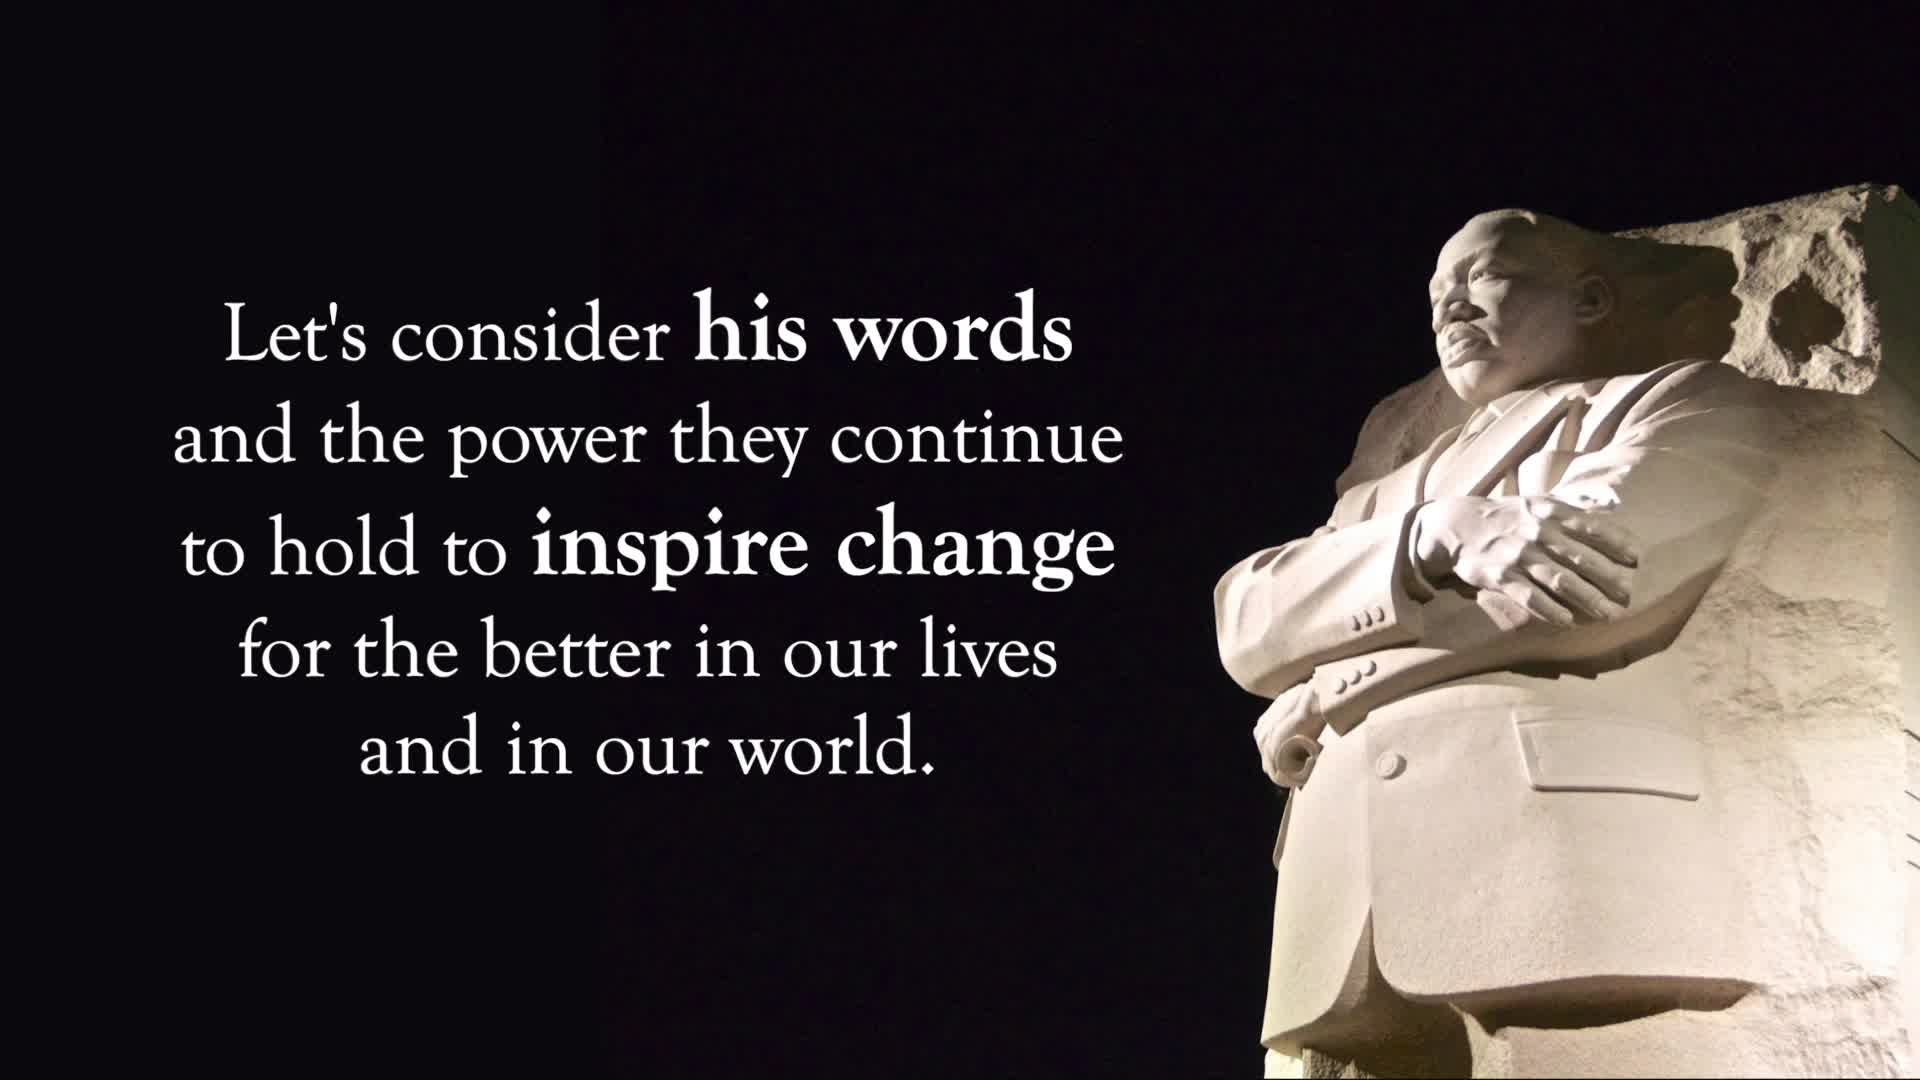 Martin Luther King, Jr. Quotes Activity